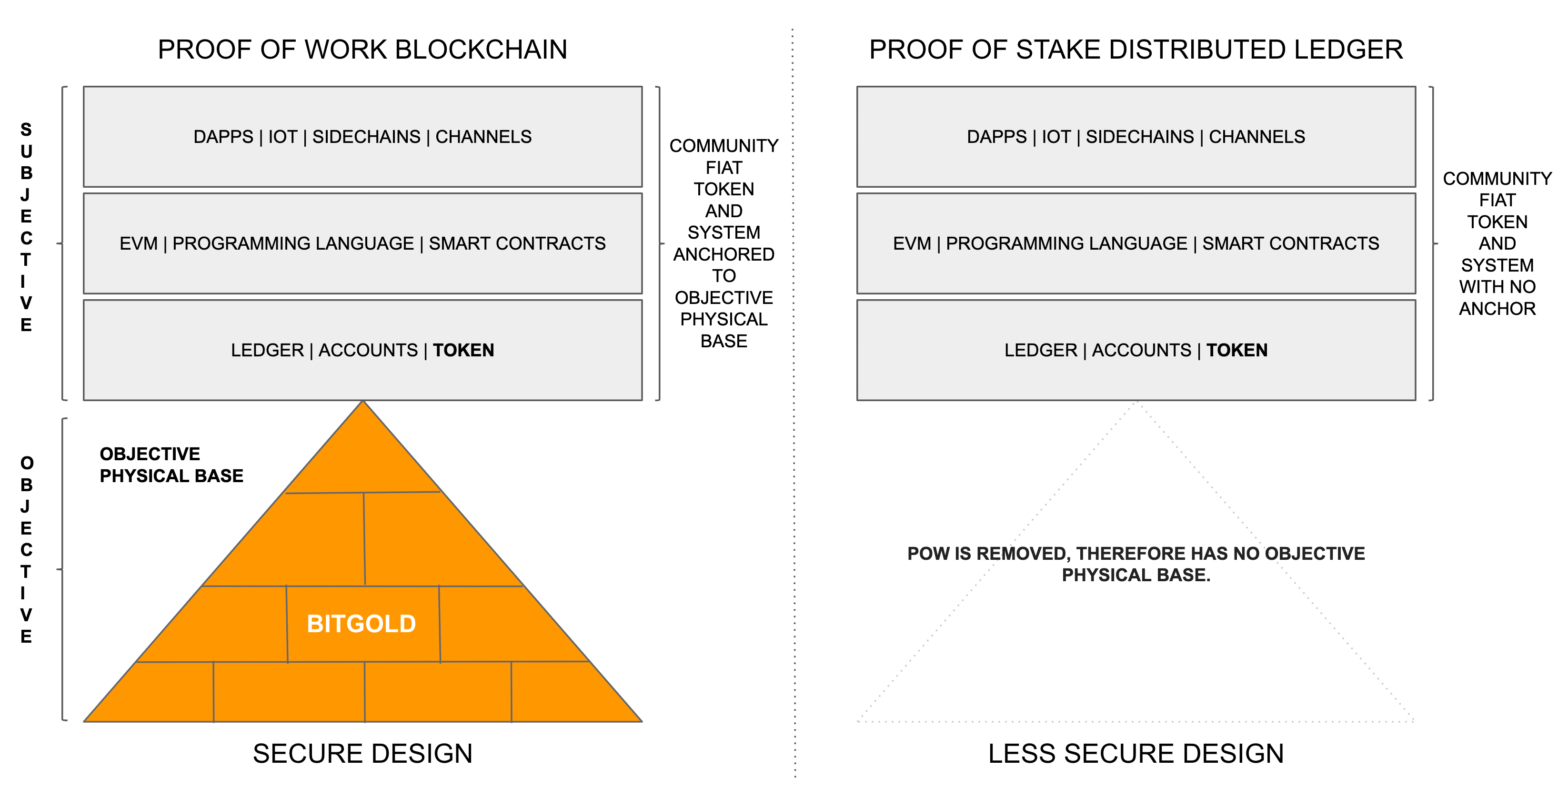 Why Proof of Stake is Less Secure Than Proof of Work